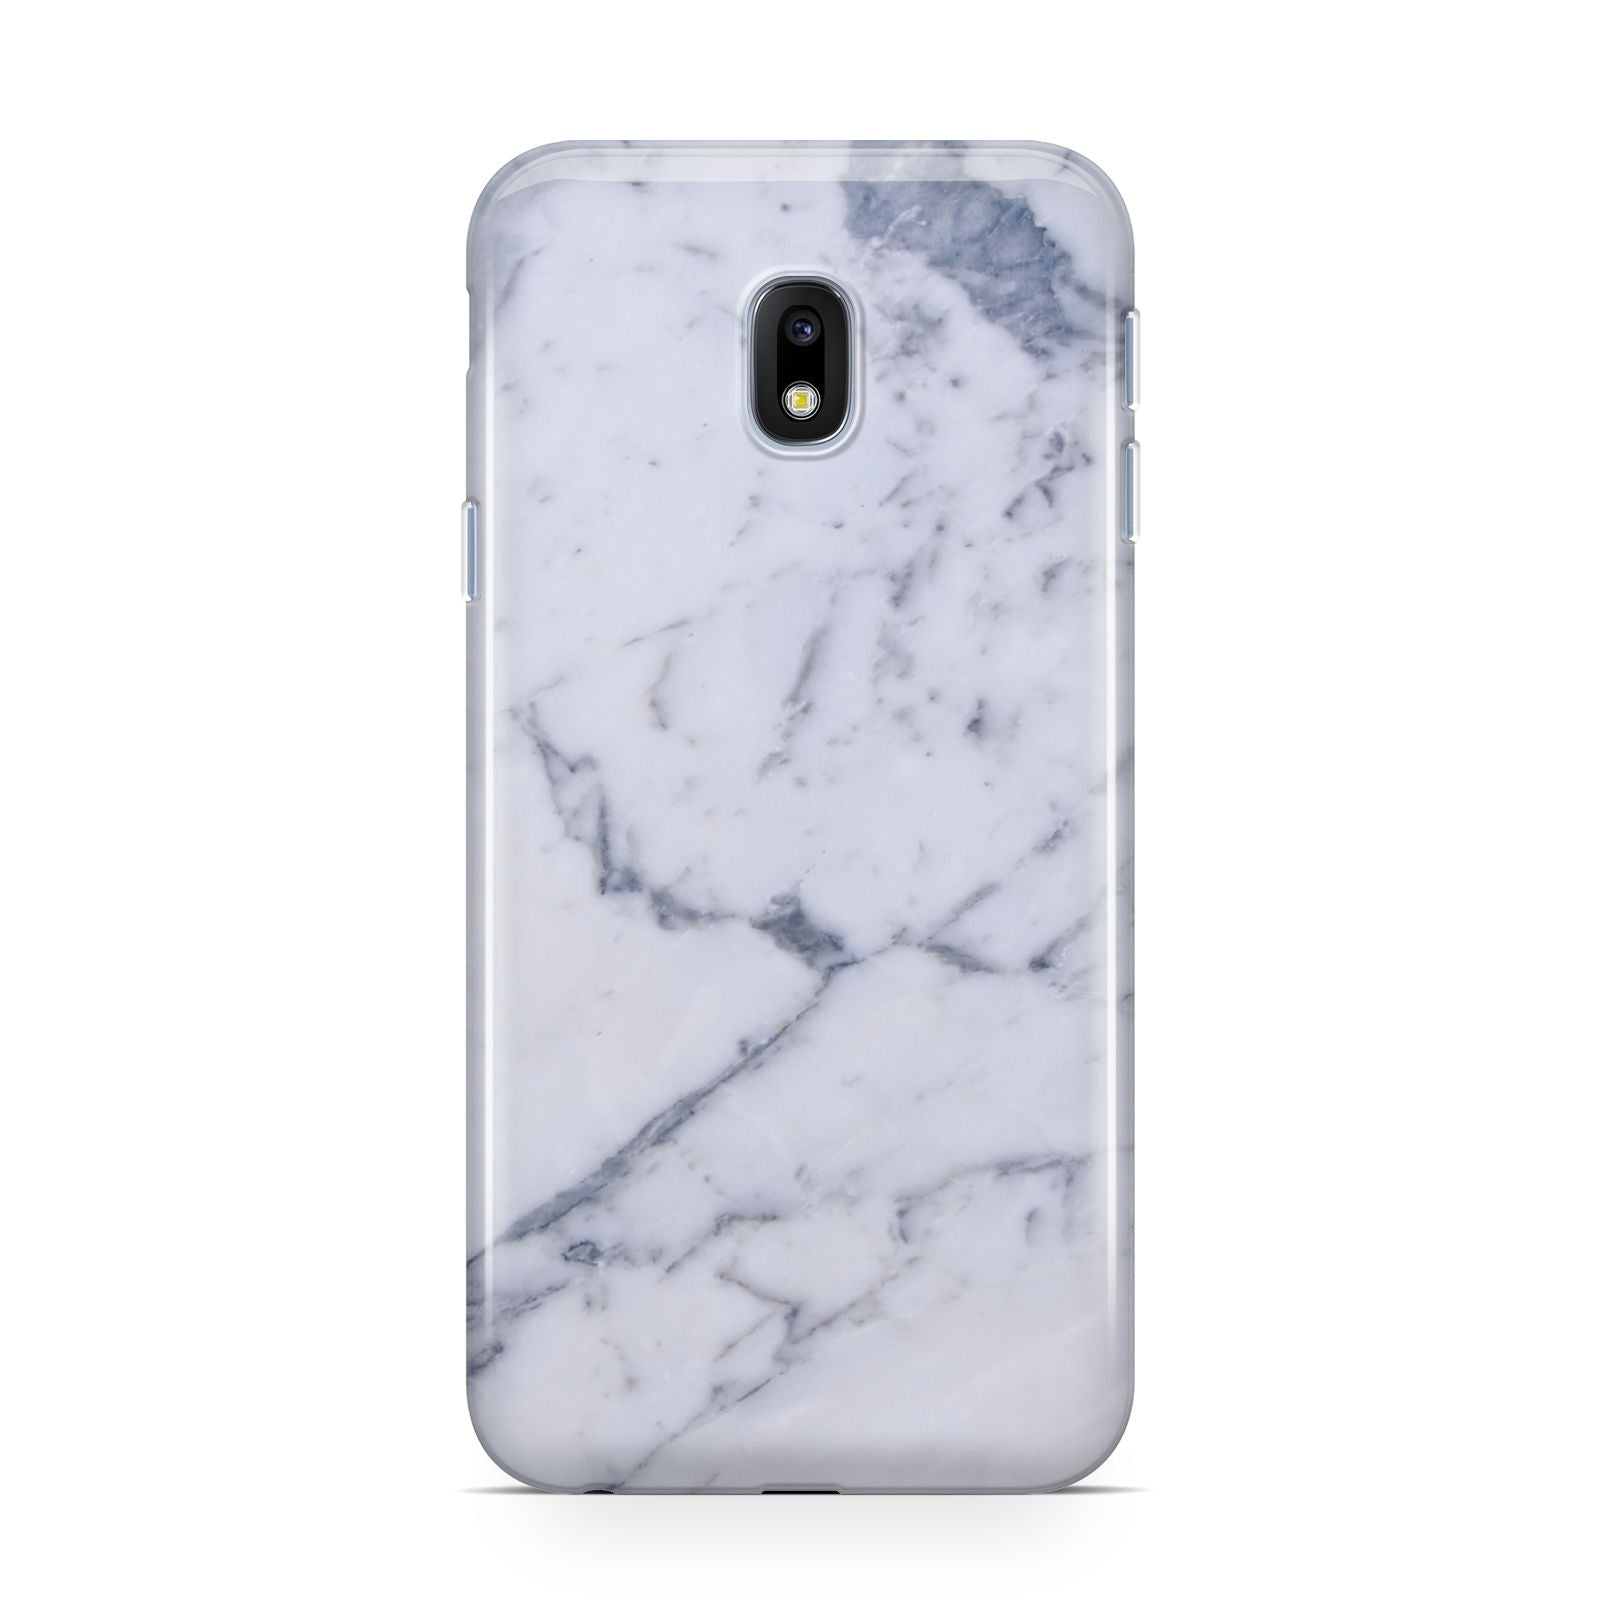 Faux Marble Grey White Samsung Galaxy J3 2017 Case